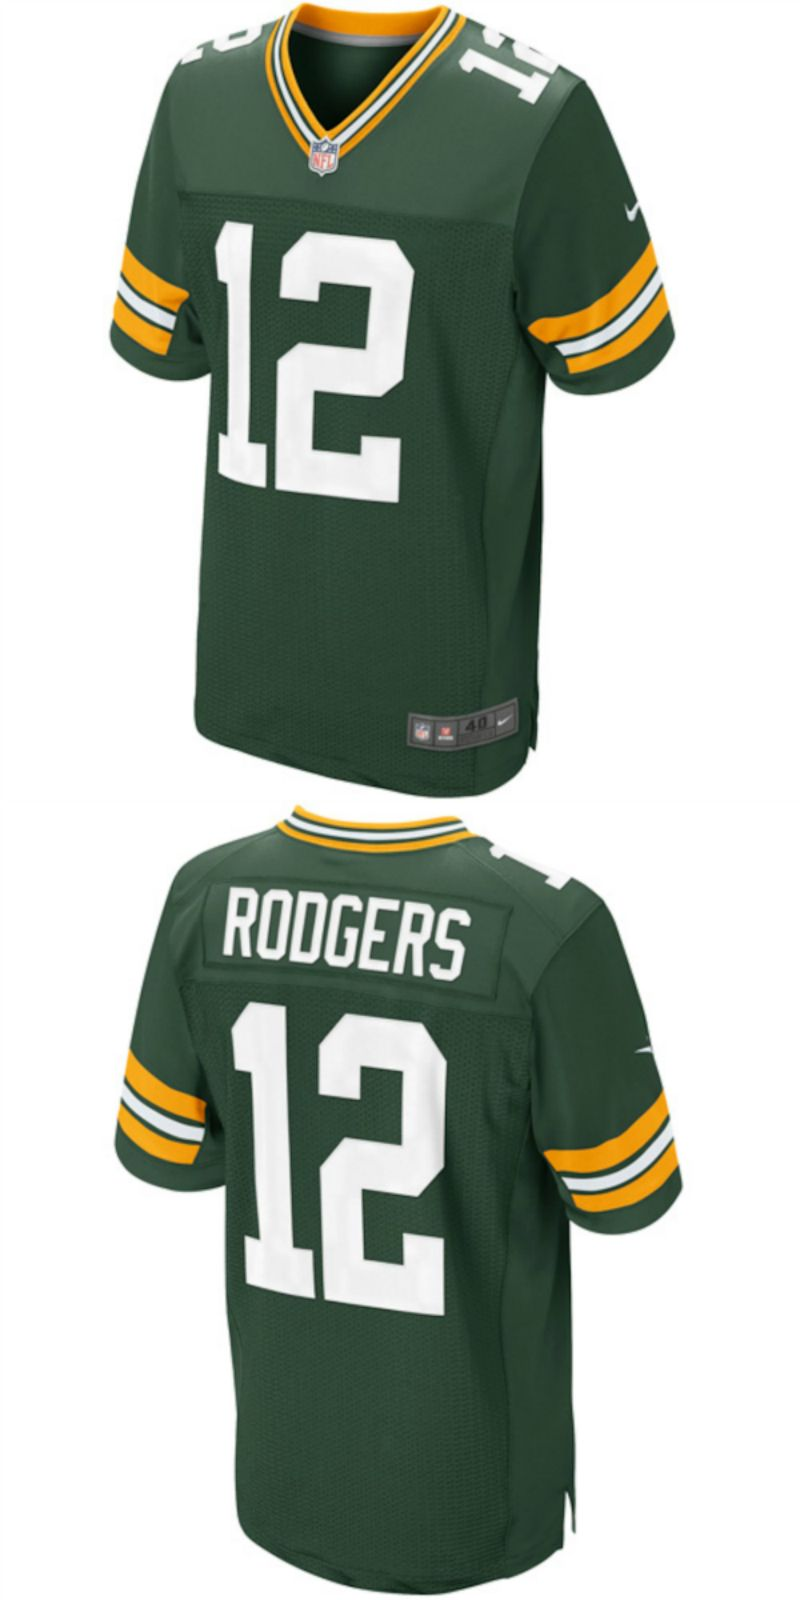 check out 95af4 95bc2 UP TO 70% OFF. Aaron Rodgers Green Bay Packers Nike Elite ...